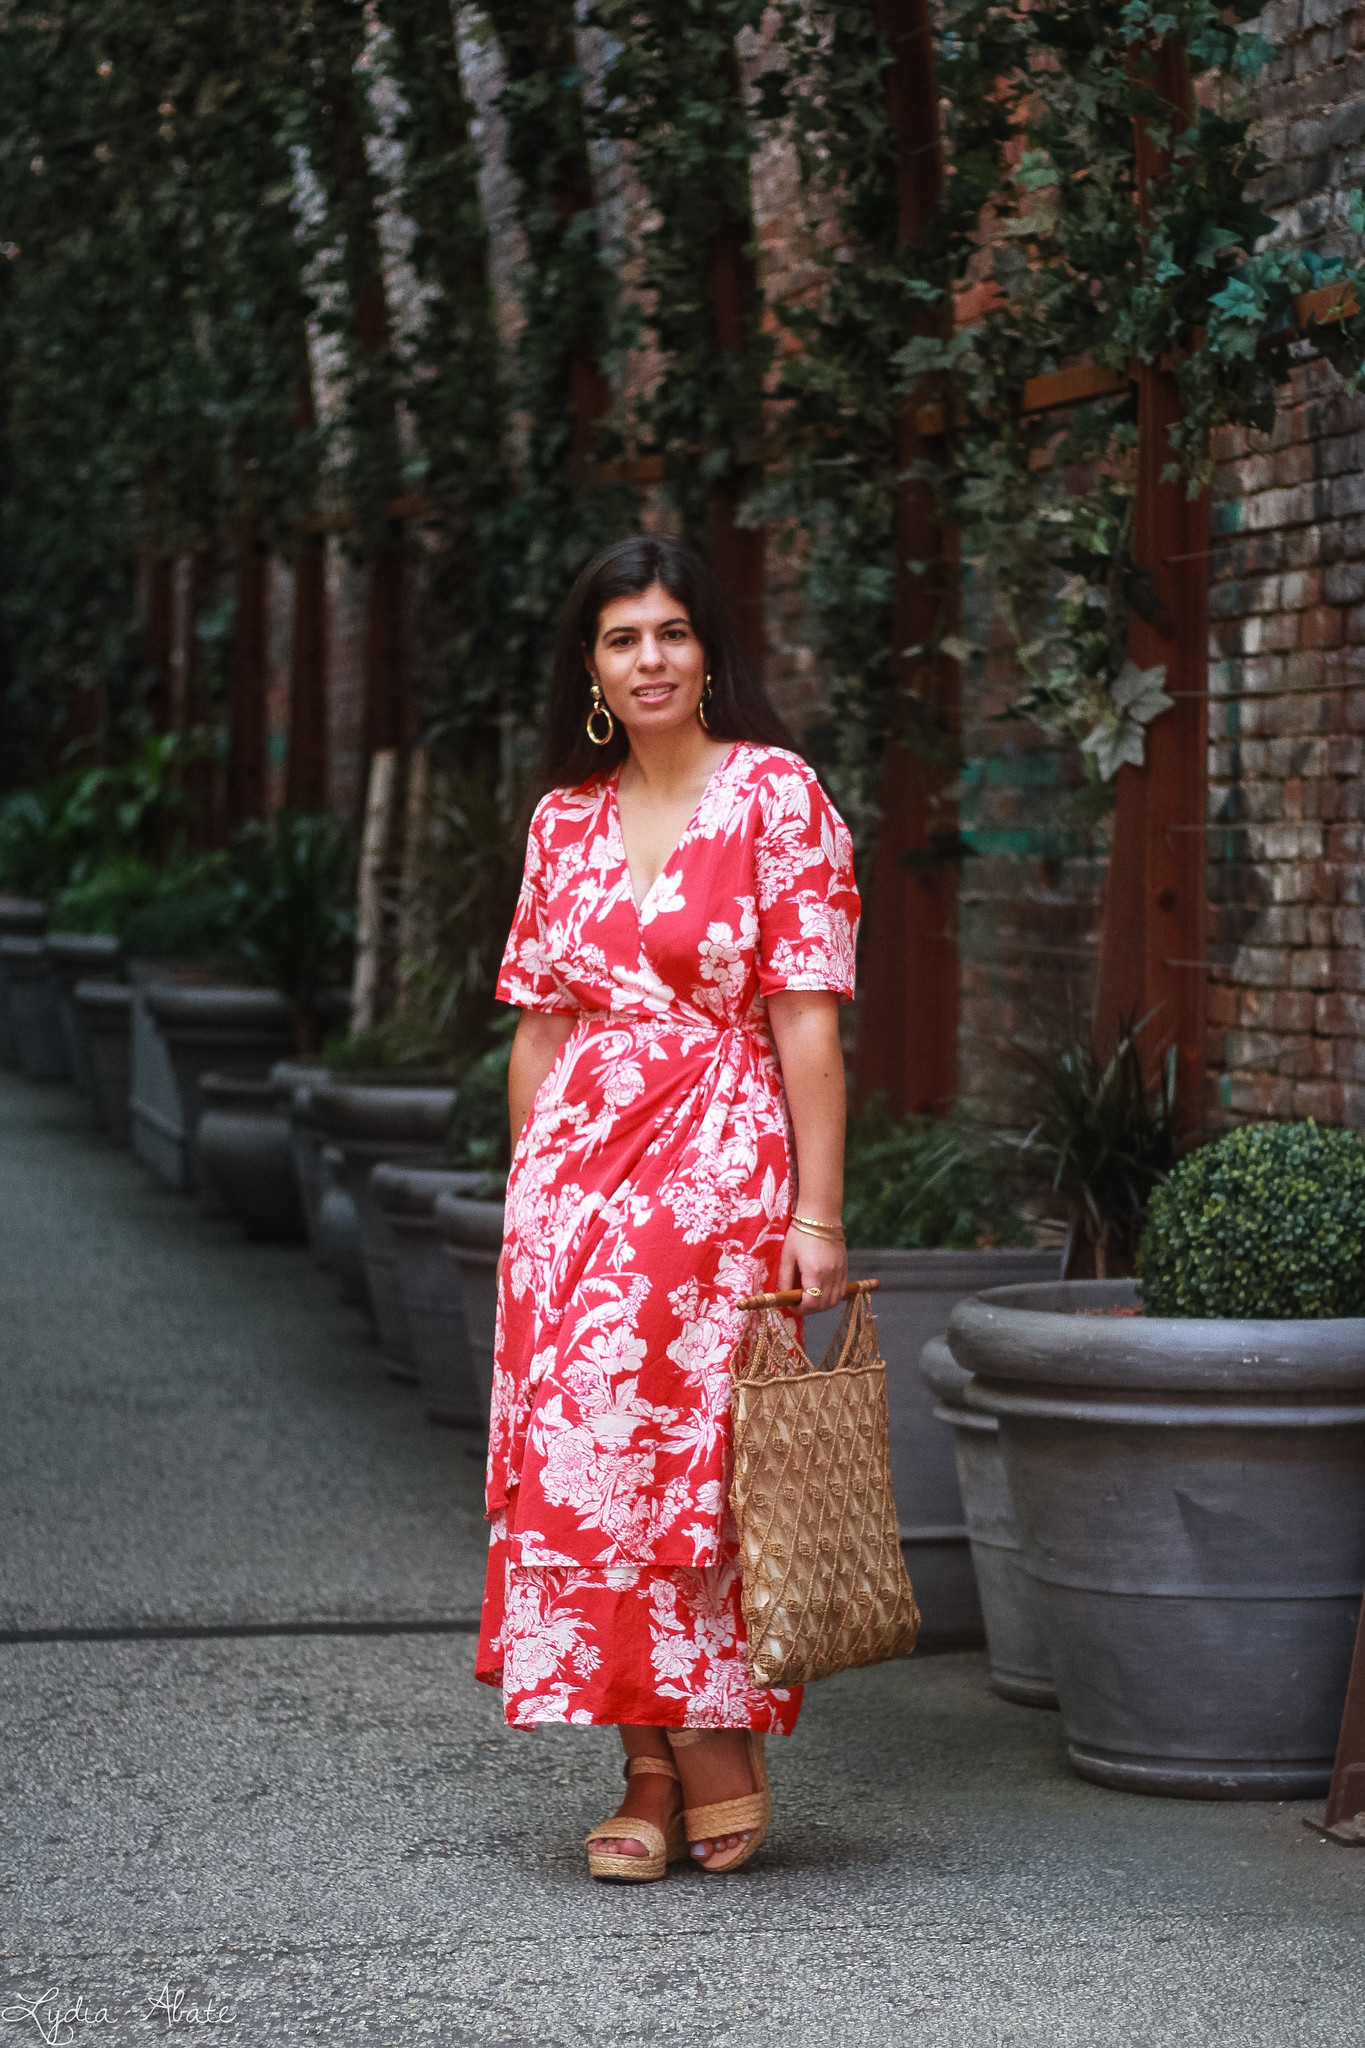 red floral maxi dress, vintage macrame bag, straw wedge sandals-2.jpg